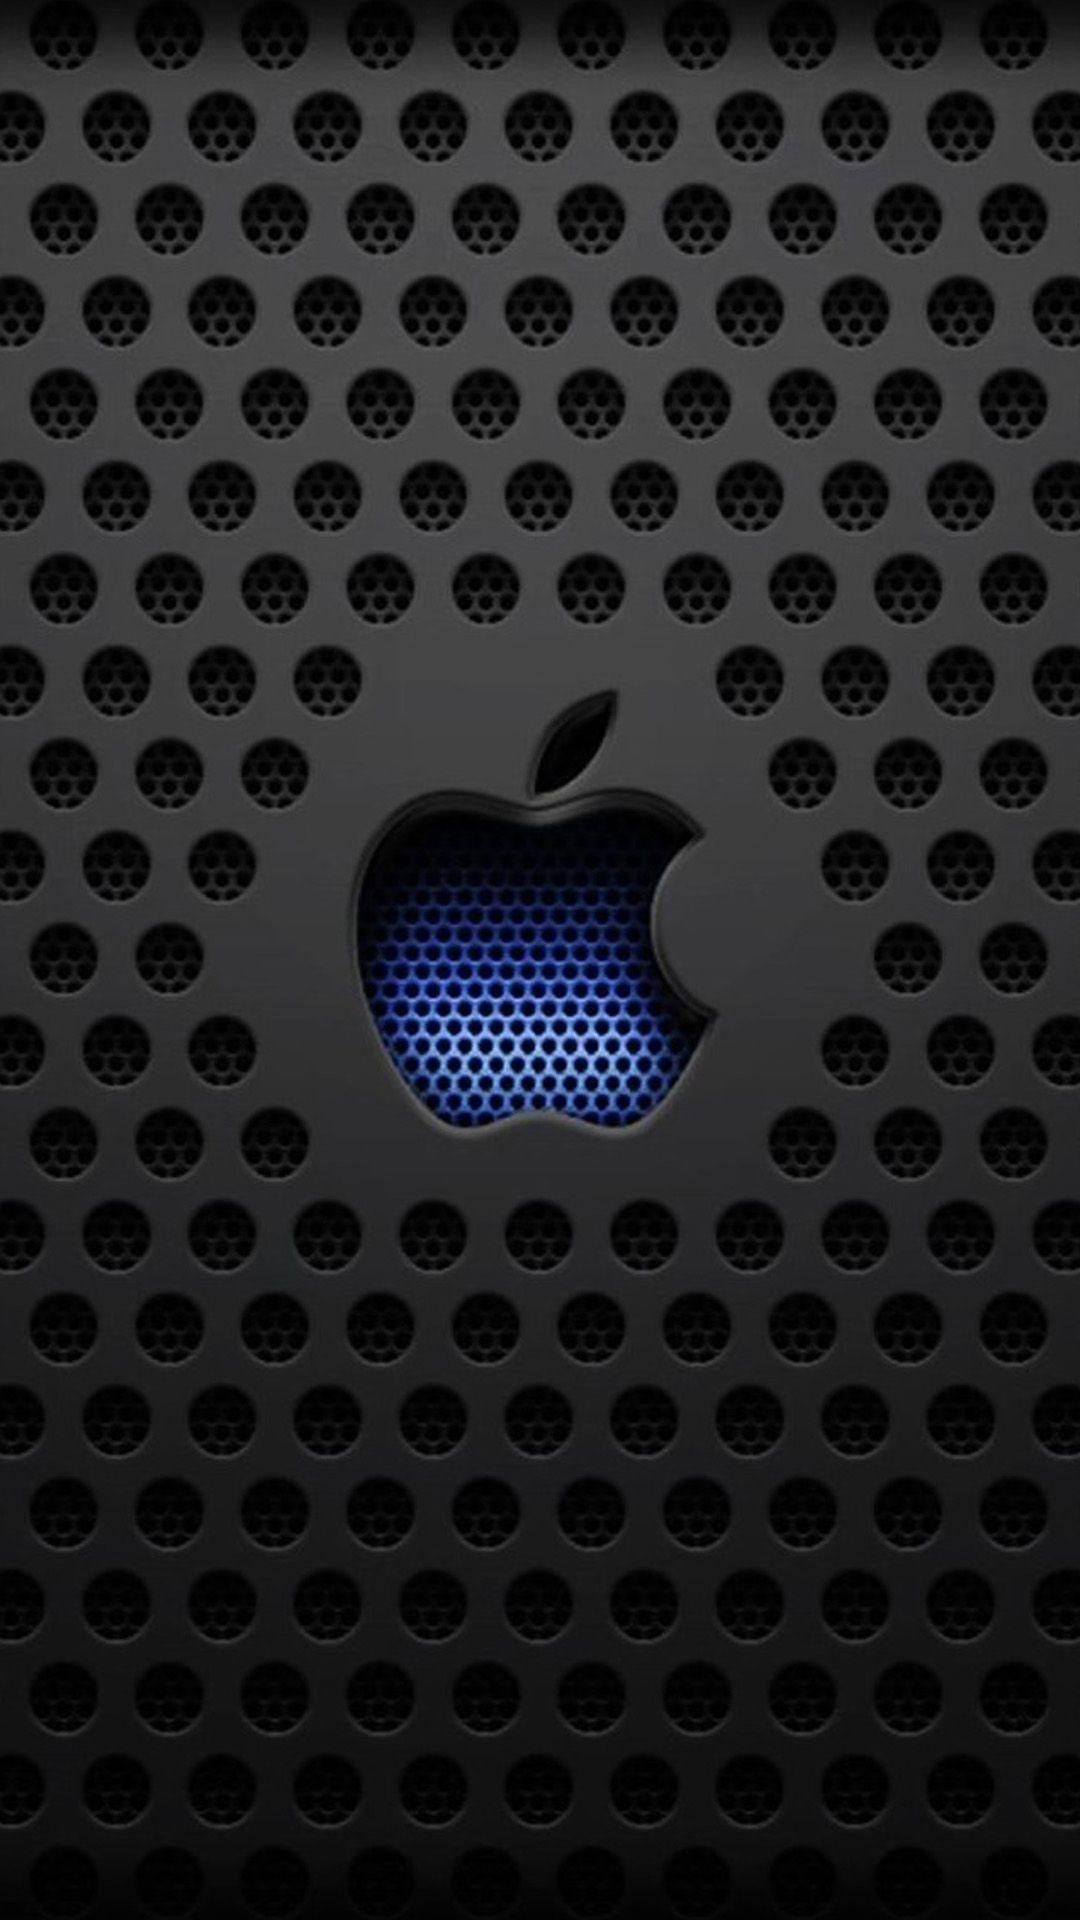 Devices Iphone 6s Plus Mobile Tablet Hd Wallpaper Devices Iphone Plus Mobile Ta Apple Logo Wallpaper Apple Logo Wallpaper Iphone Apple Iphone Wallpaper Hd